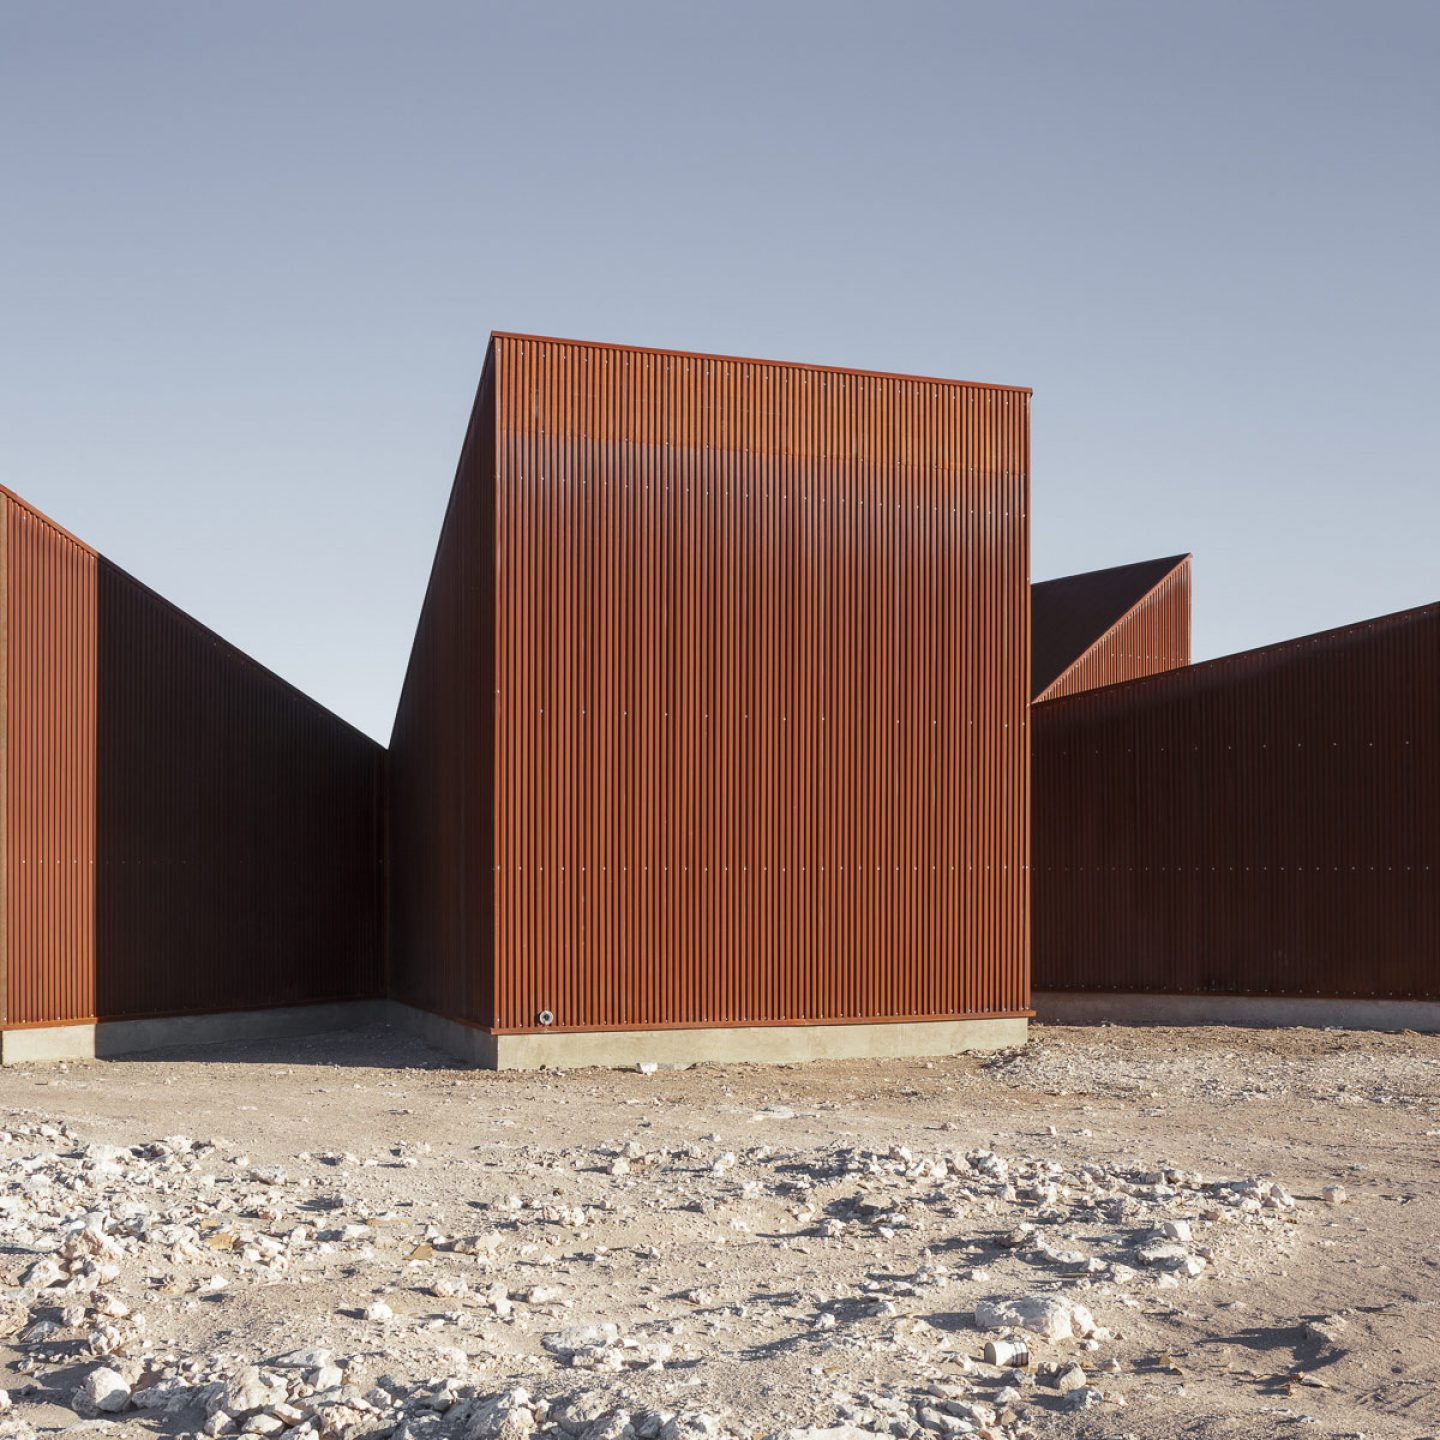 iGNANT-Architecture-Desert-Interpretation-Center-Emilio-Marin-Juan-Carlos-Lopez-7